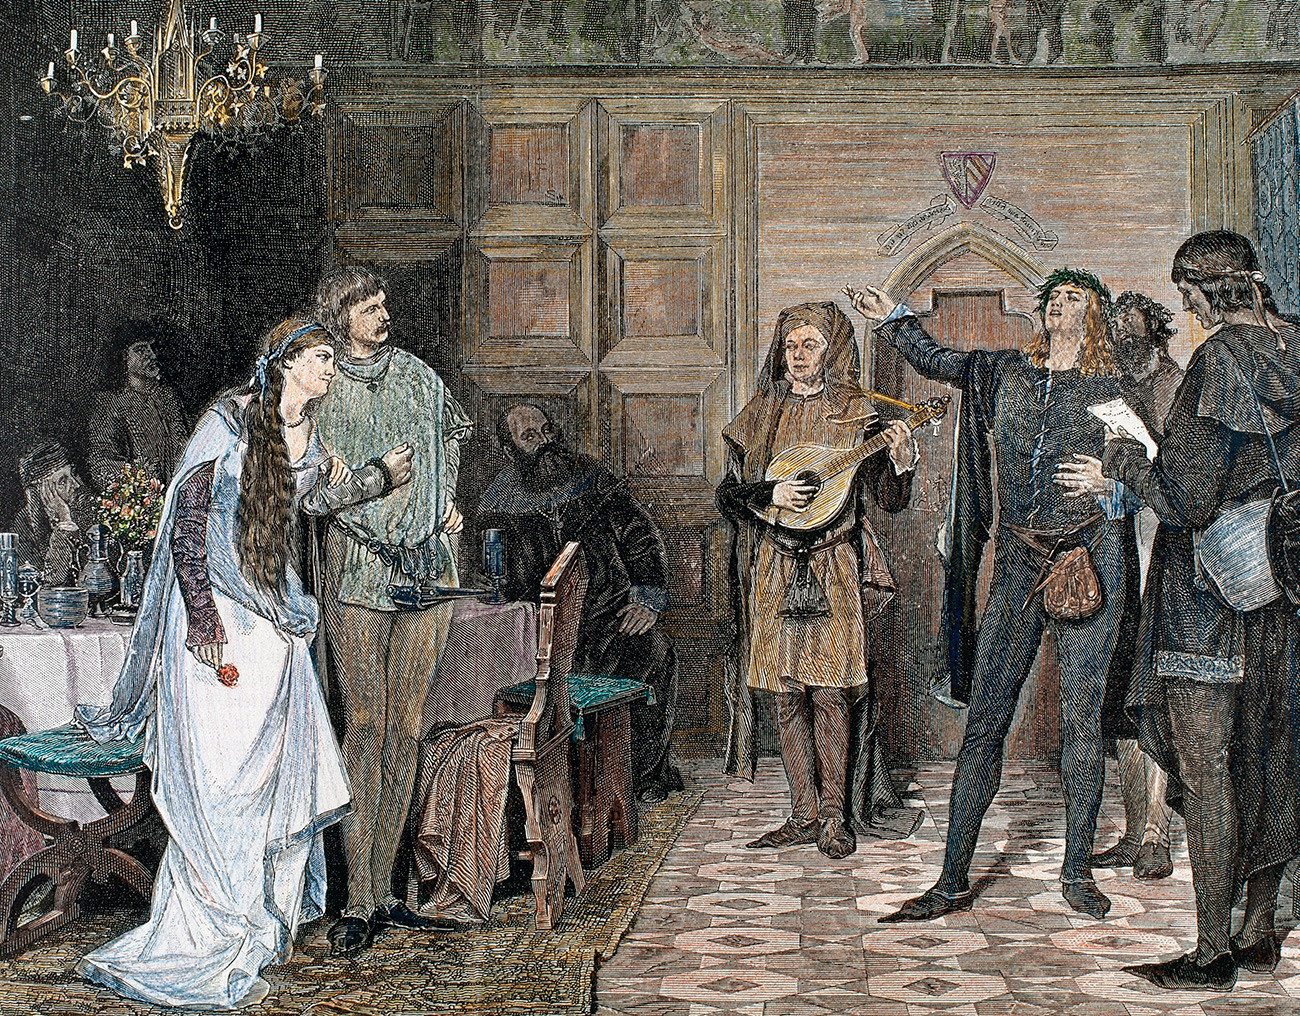 Troubadours singing and reciting one of his poems, written in Occitan. 12th and 13th centuries. Colored engraving.